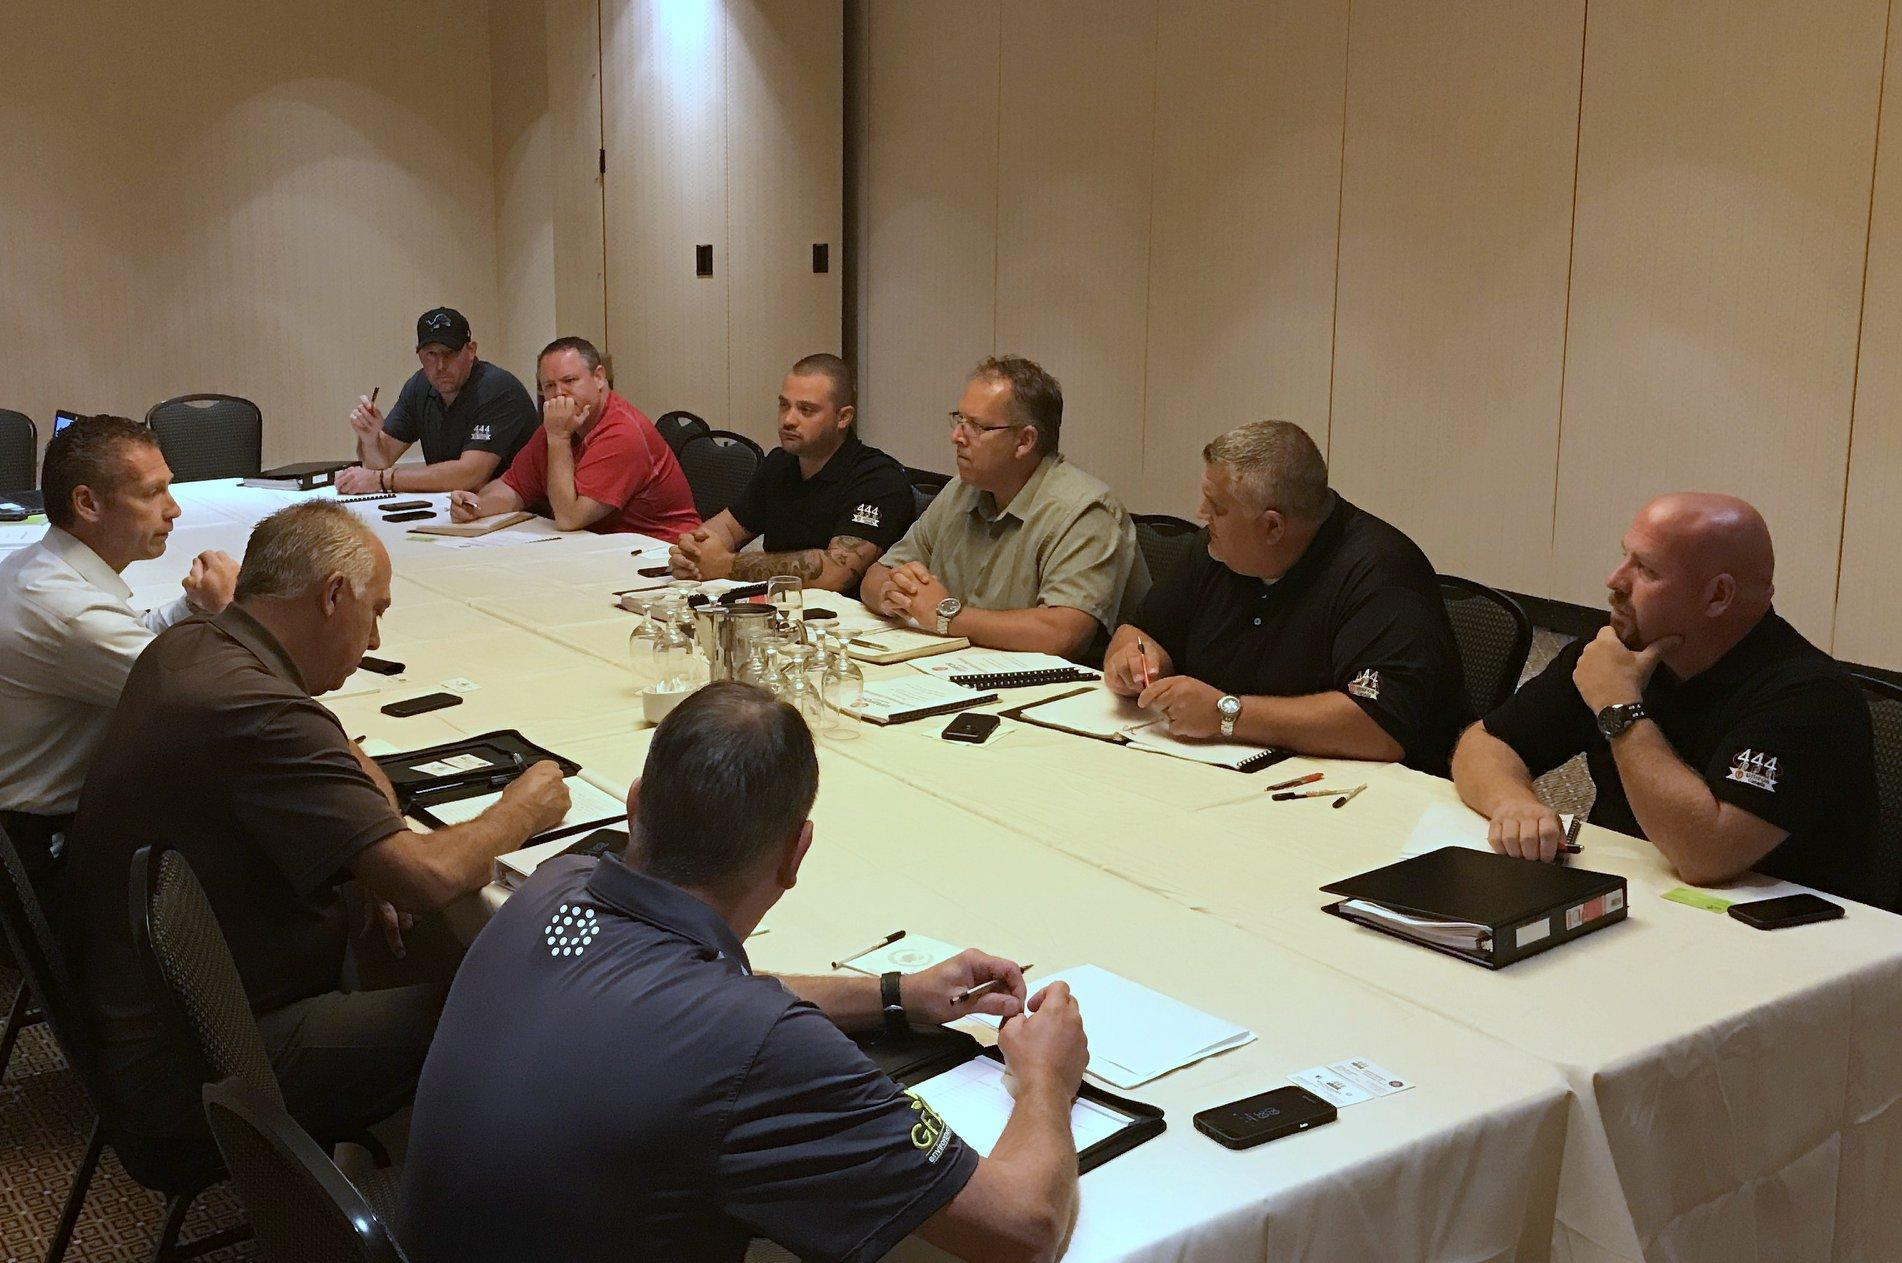 AM800-News-GFL-Unifor-Local-444-Contract-Talks-September-2018.jpg